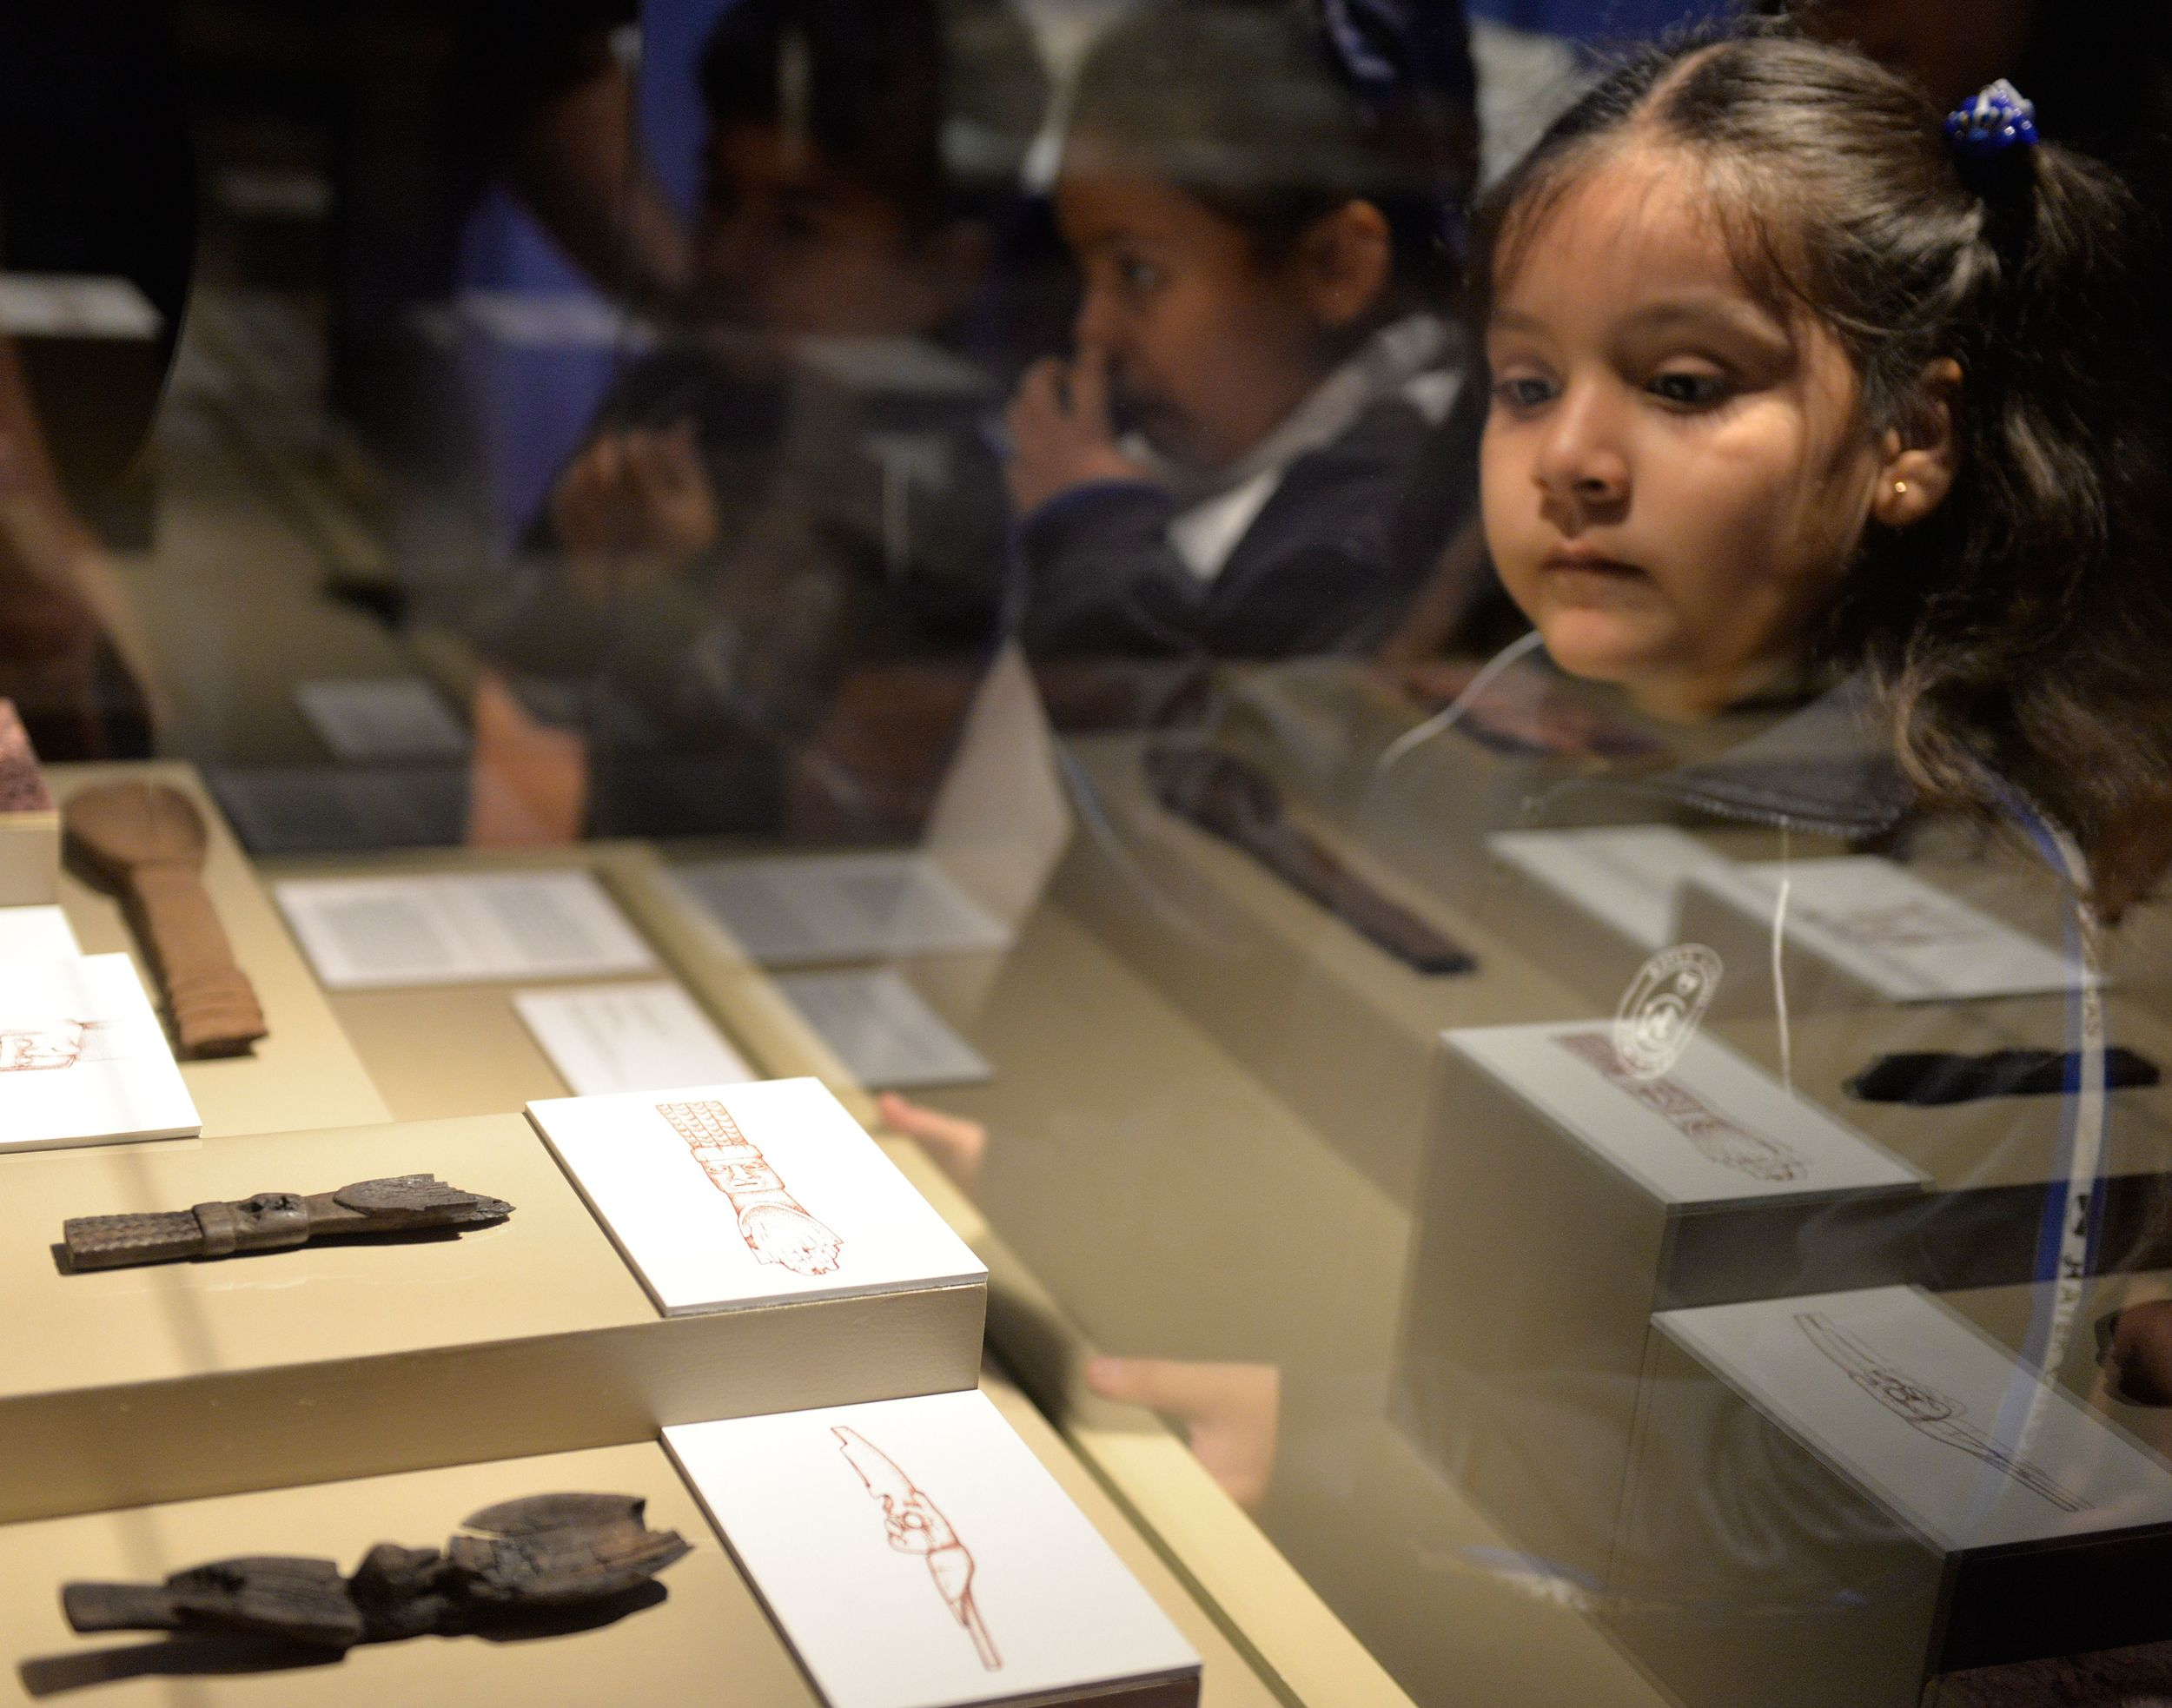 Monumental discovery of lost Jewish artifacts thought to have been destroyed in holocaust